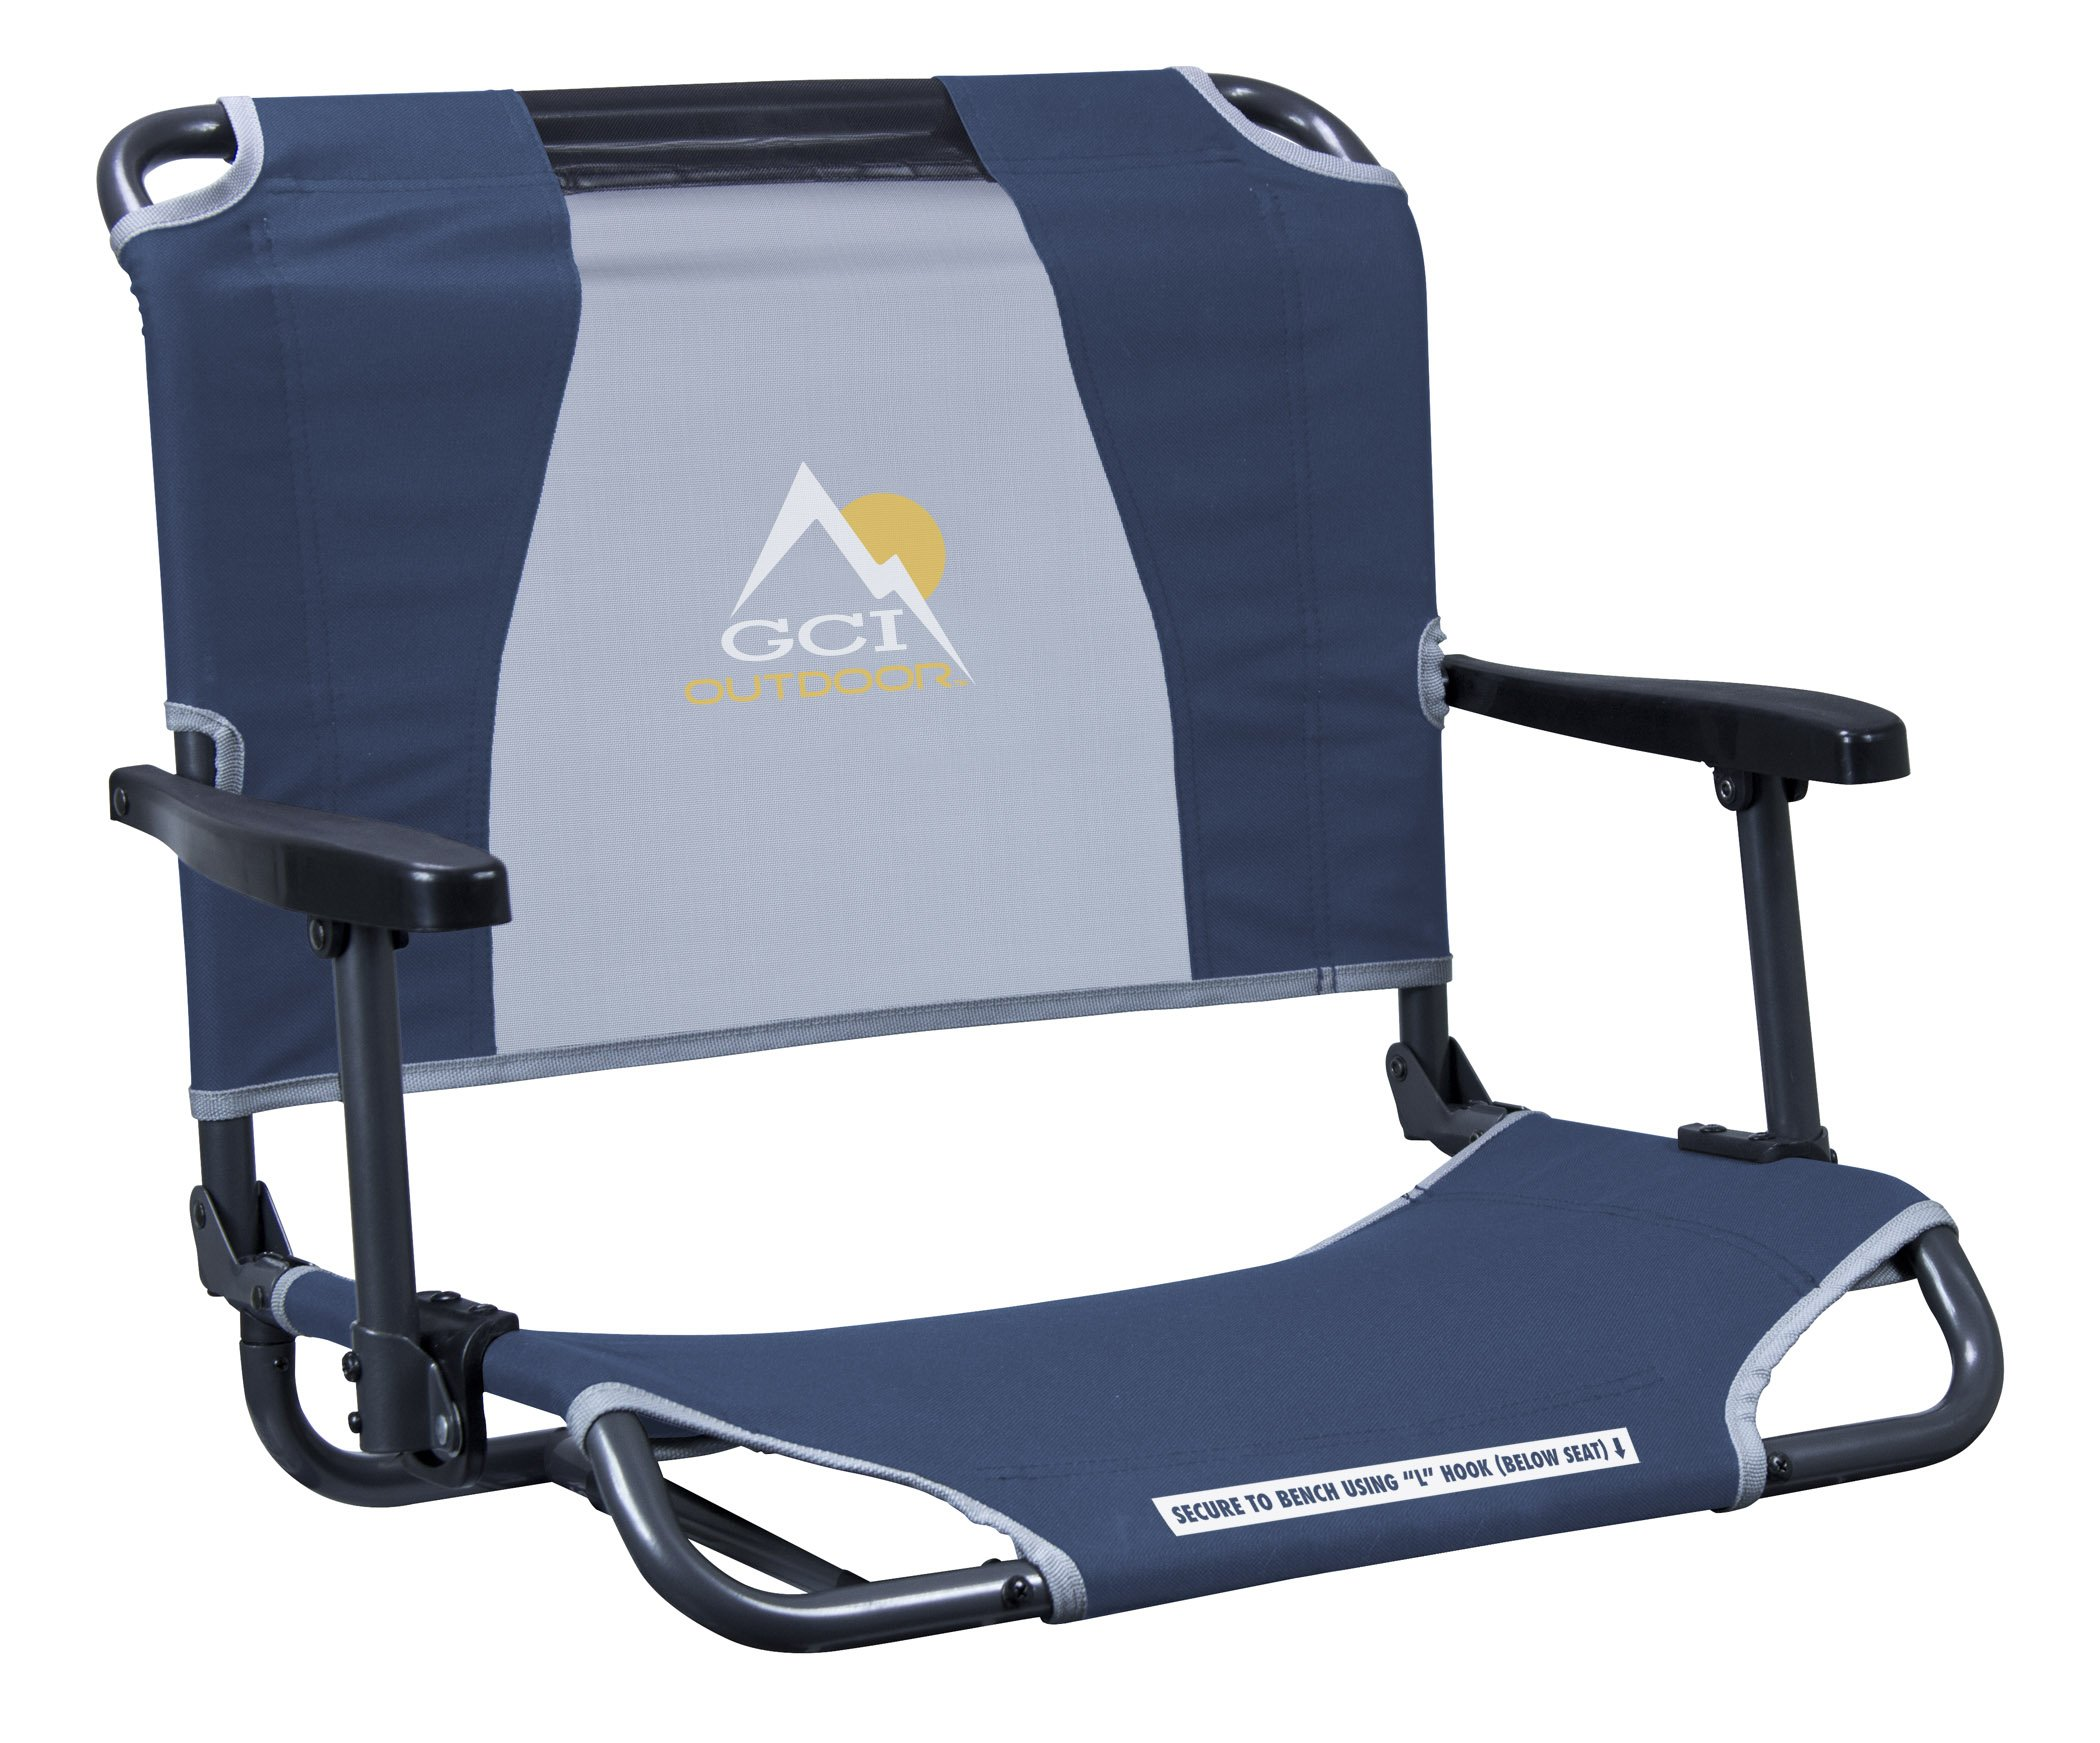 GCI Outdoor Big Comfort Wide Stadium Bleacher Seat with Back and Armrests, Navy